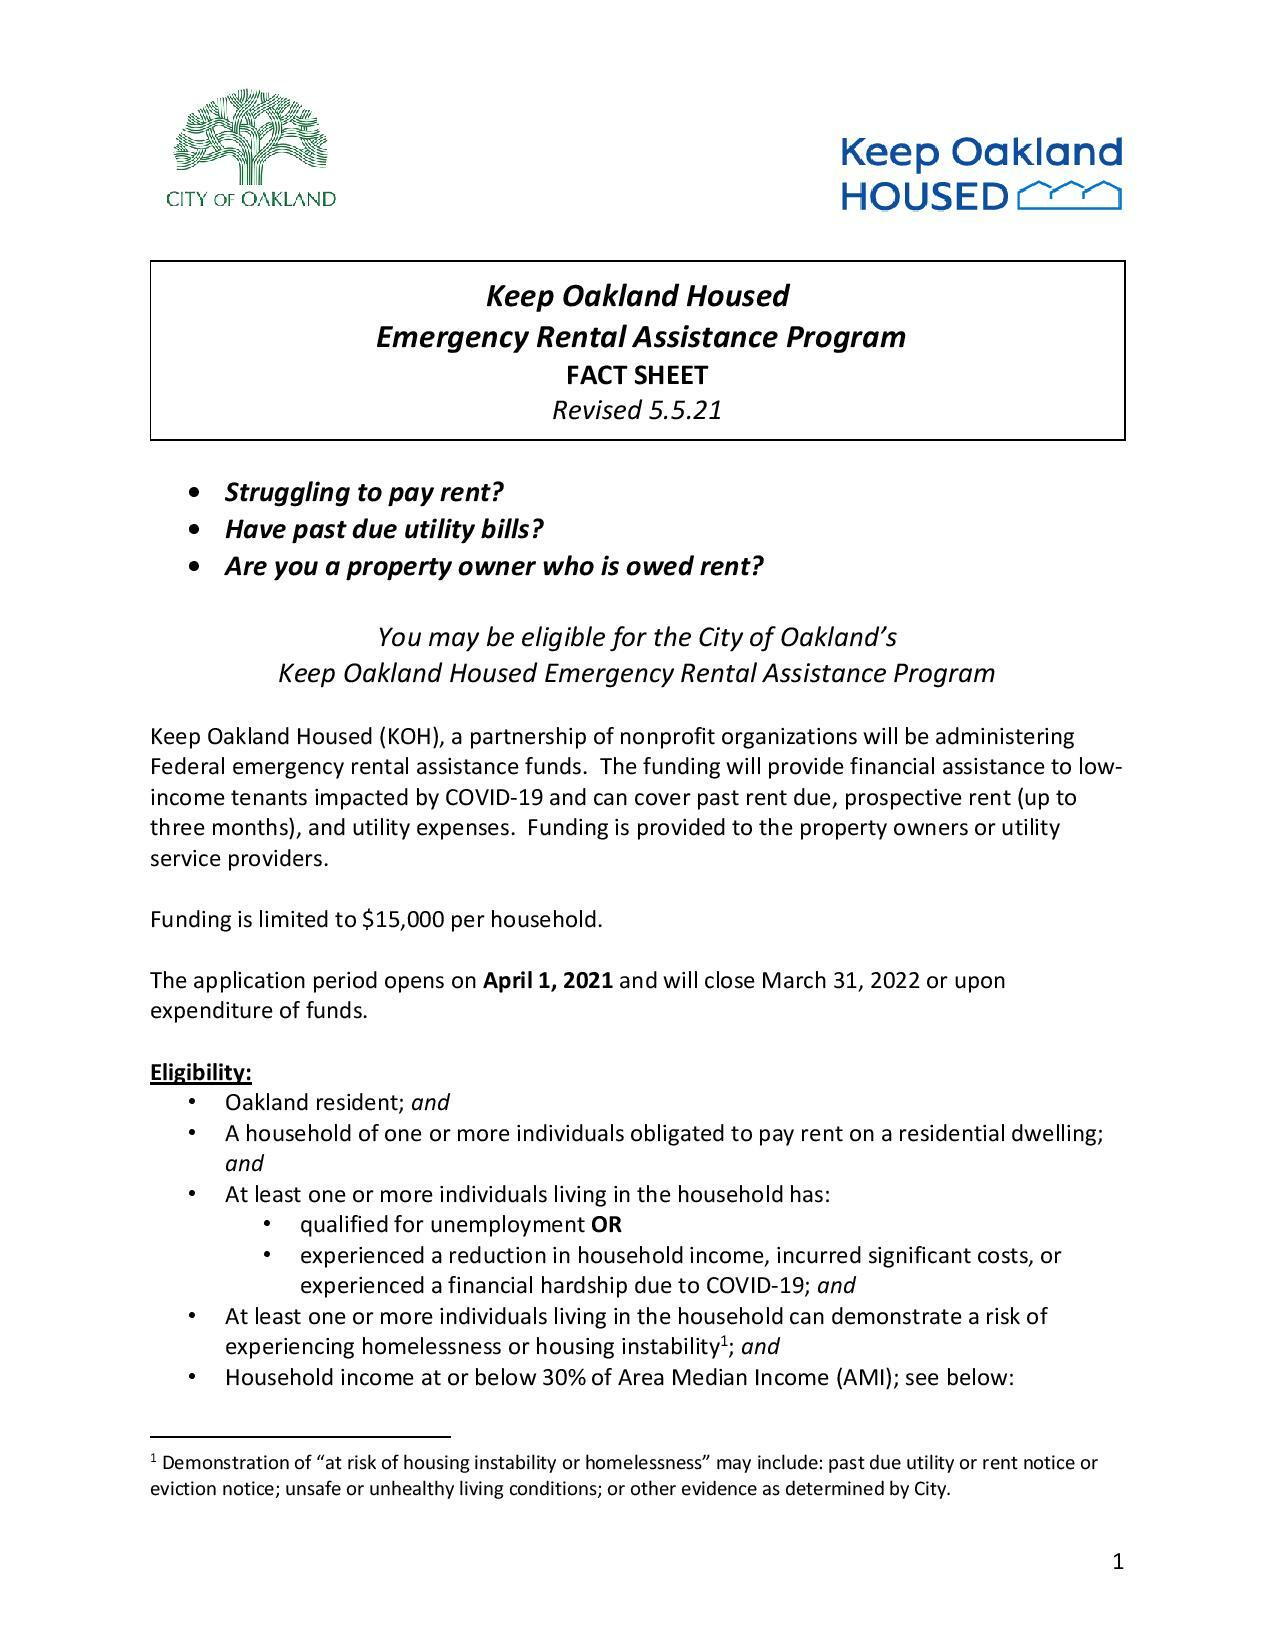 Updated Emergency Rental Fact sheet page 1